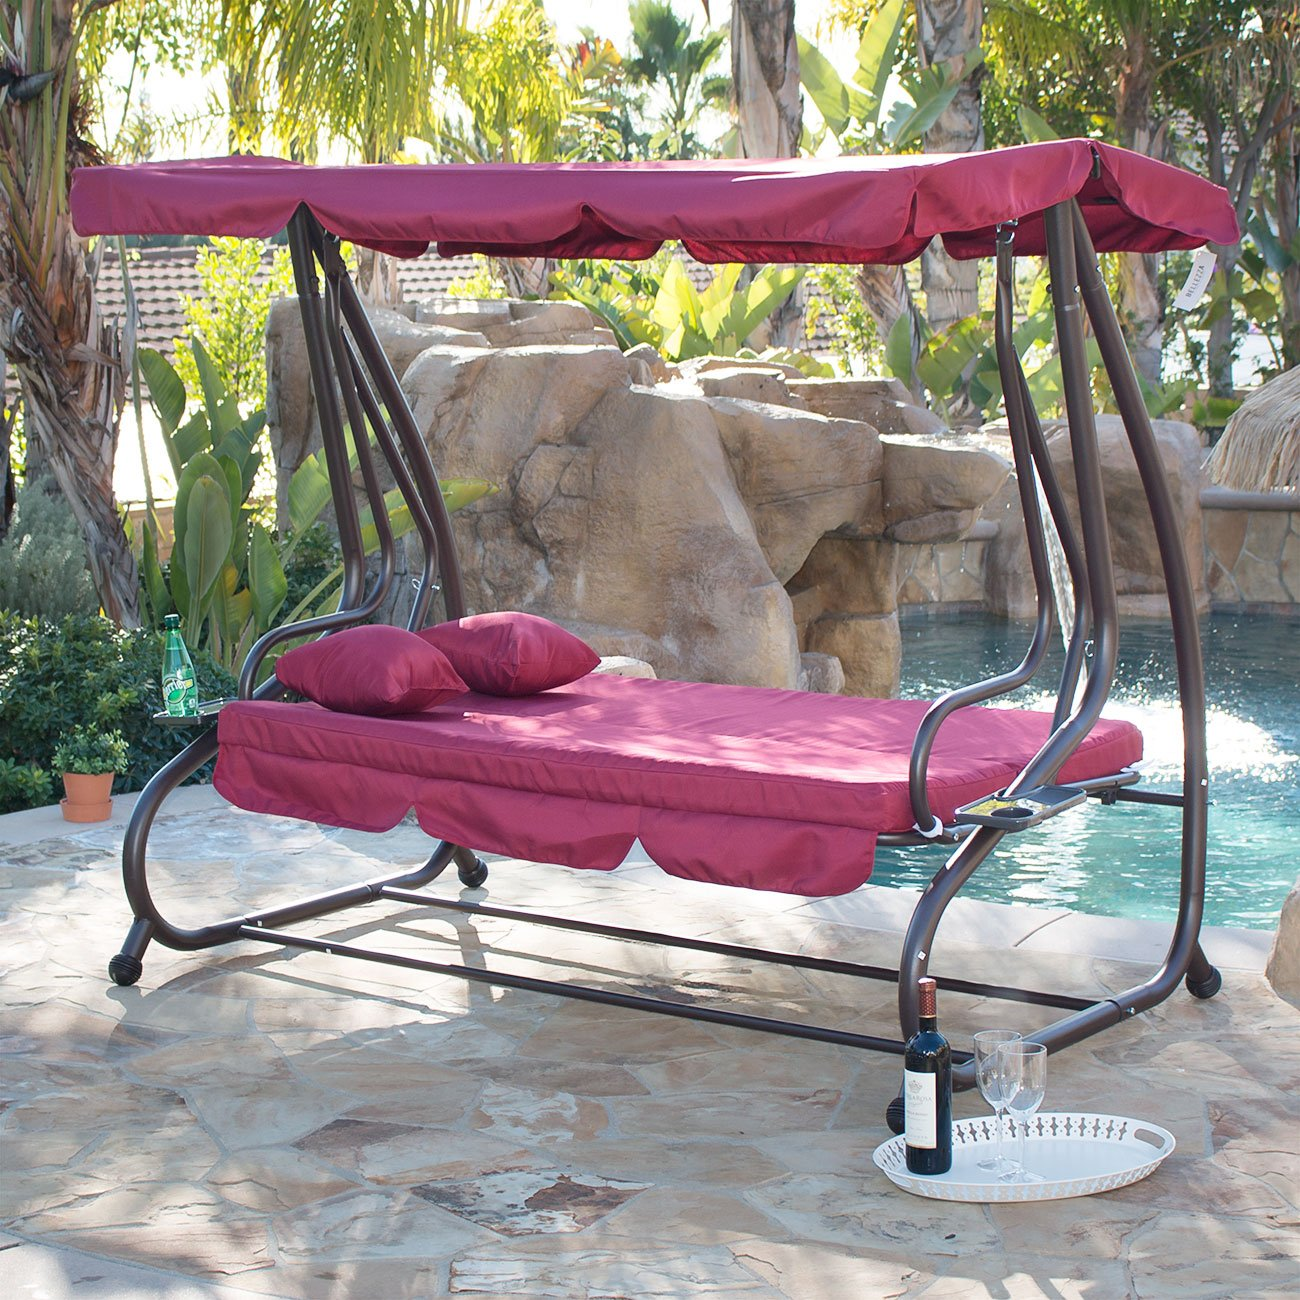 Amazon.com  Belleze 3 Seat Porch u0026 Patio Swing / Bed with pillow -Burgundy  Garden u0026 Outdoor & Amazon.com : Belleze 3 Seat Porch u0026 Patio Swing / Bed with pillow ...